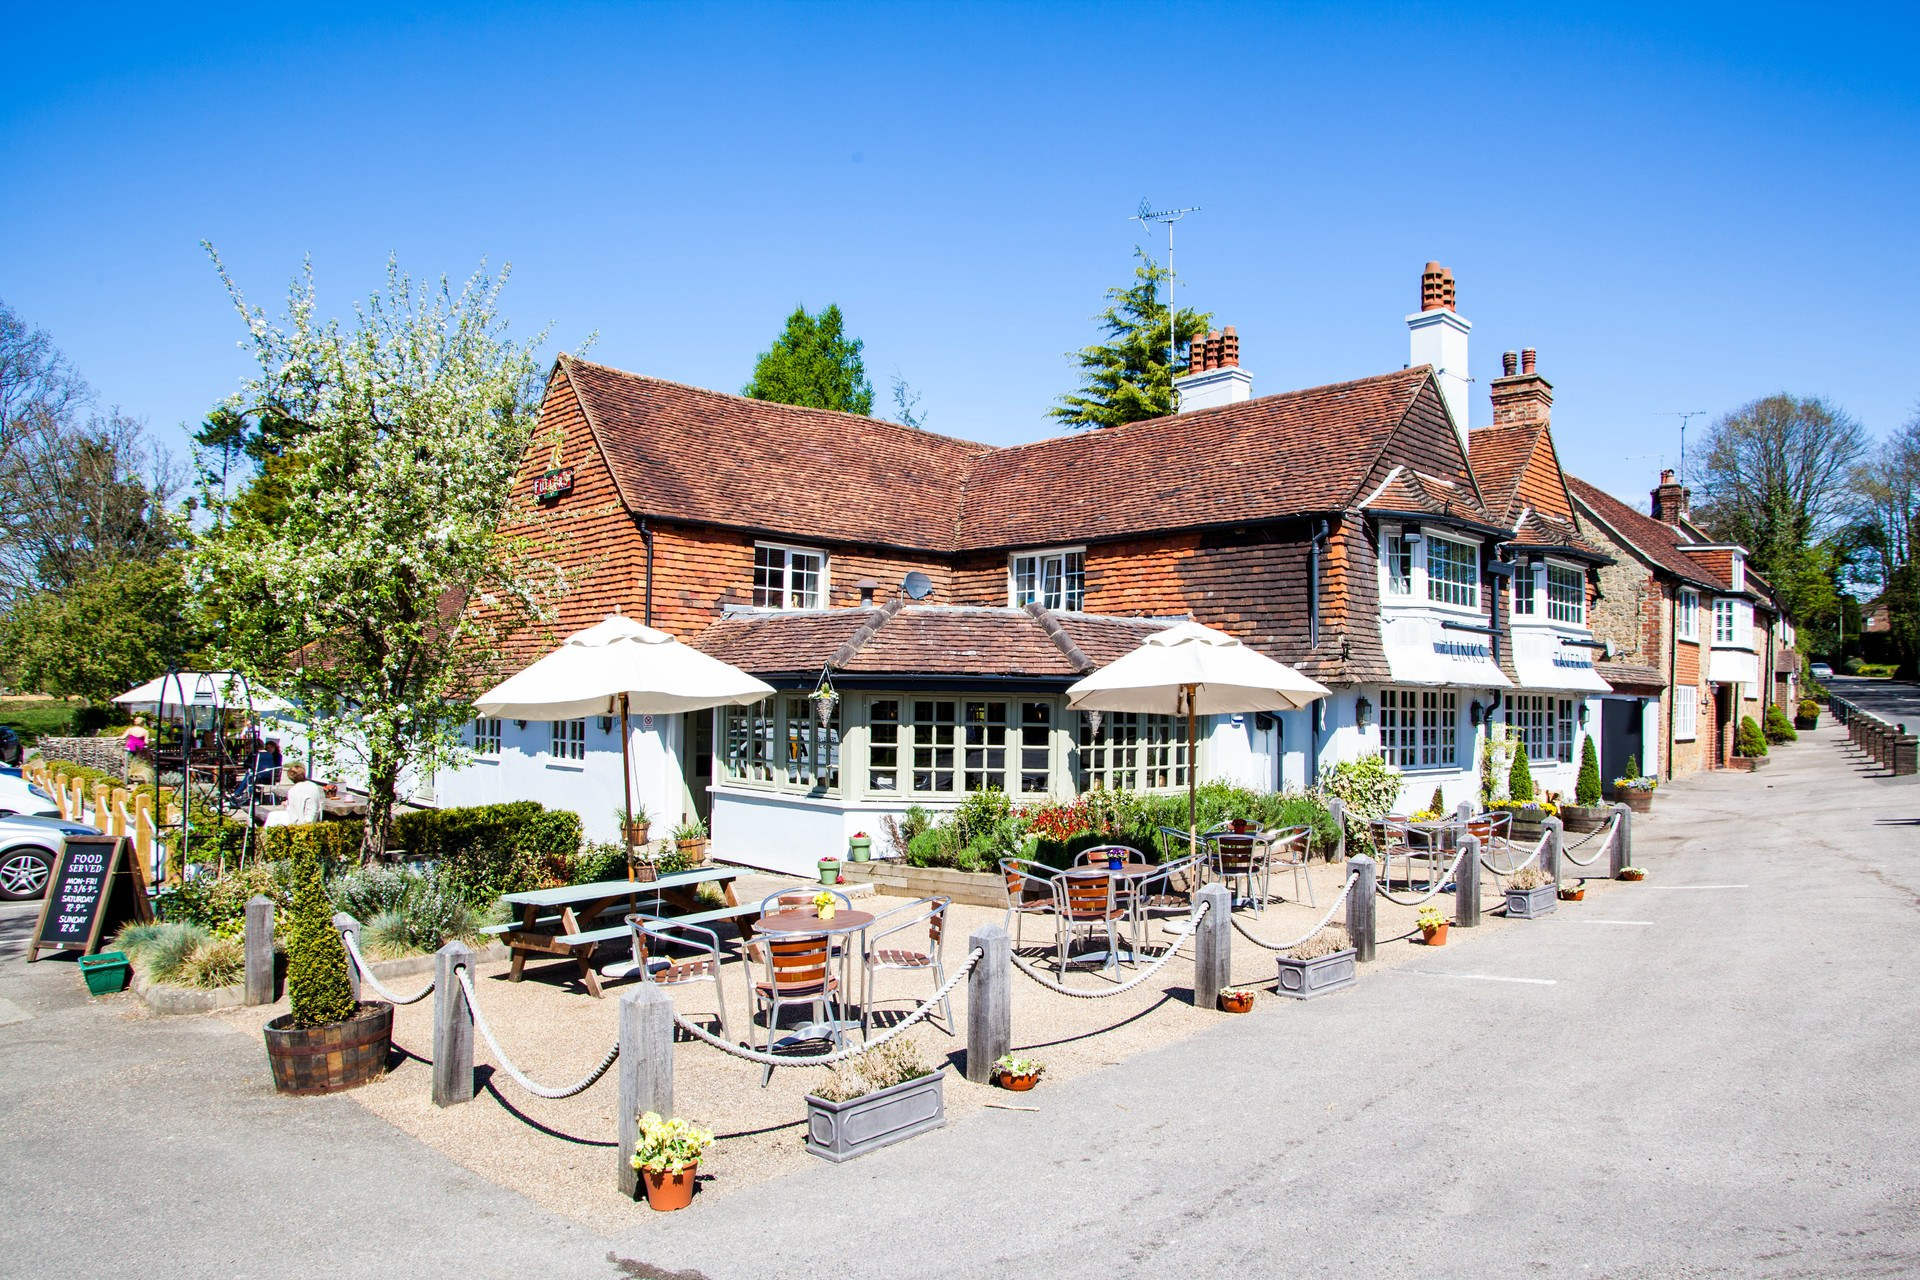 The Links Tavern, Liphook - As You Like It